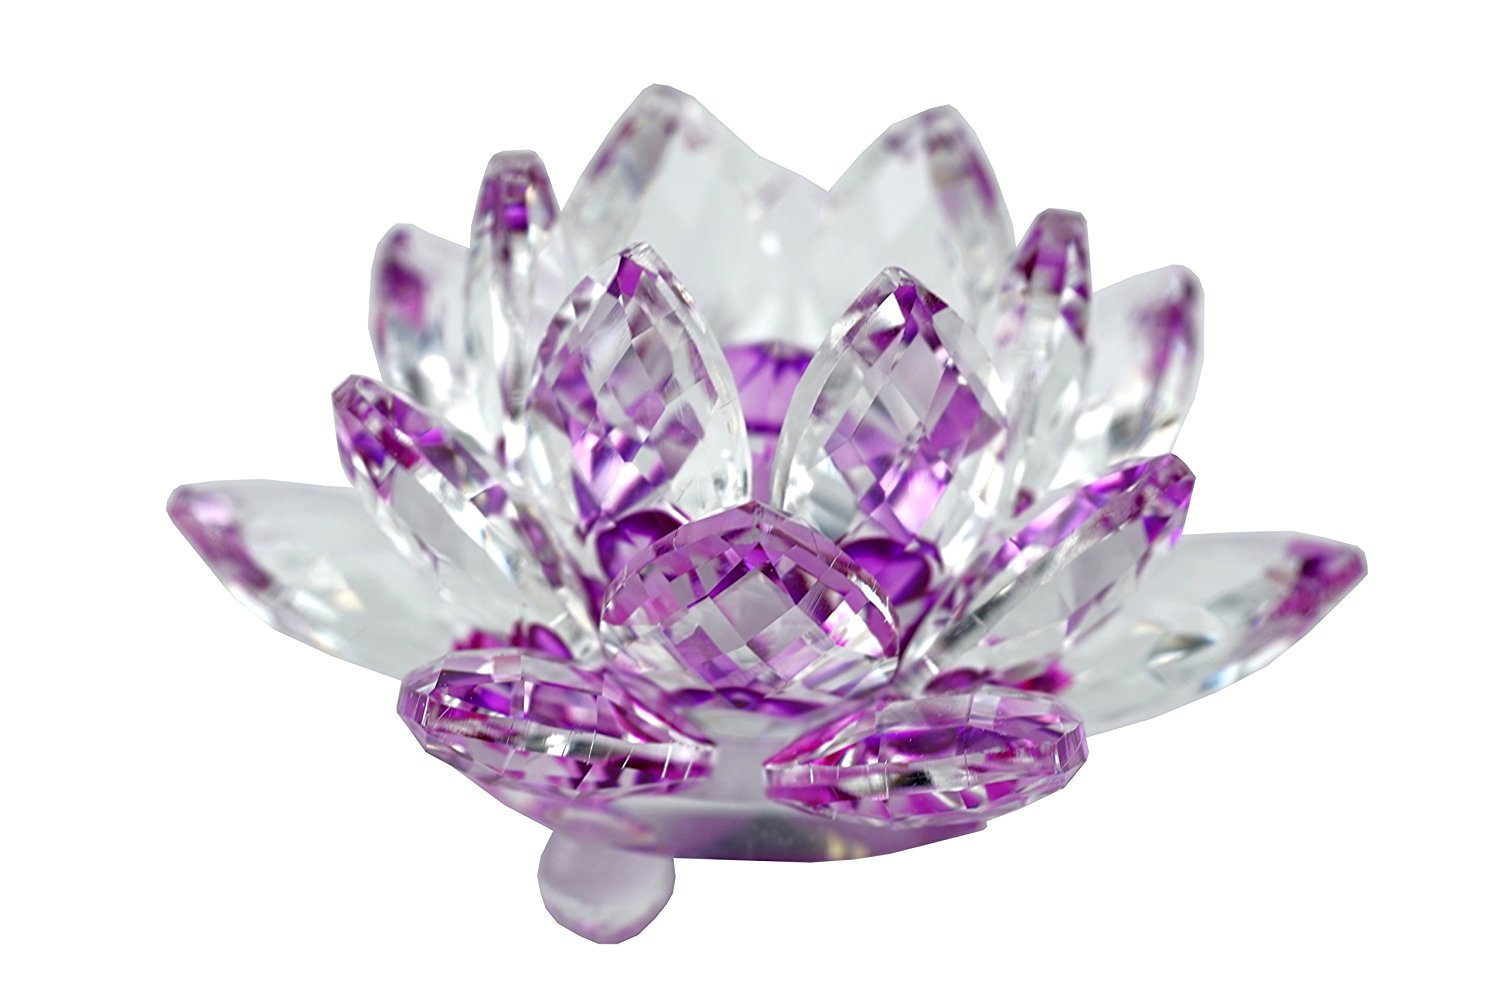 Cheap Crystal Lotus Flower Find Crystal Lotus Flower Deals On Line